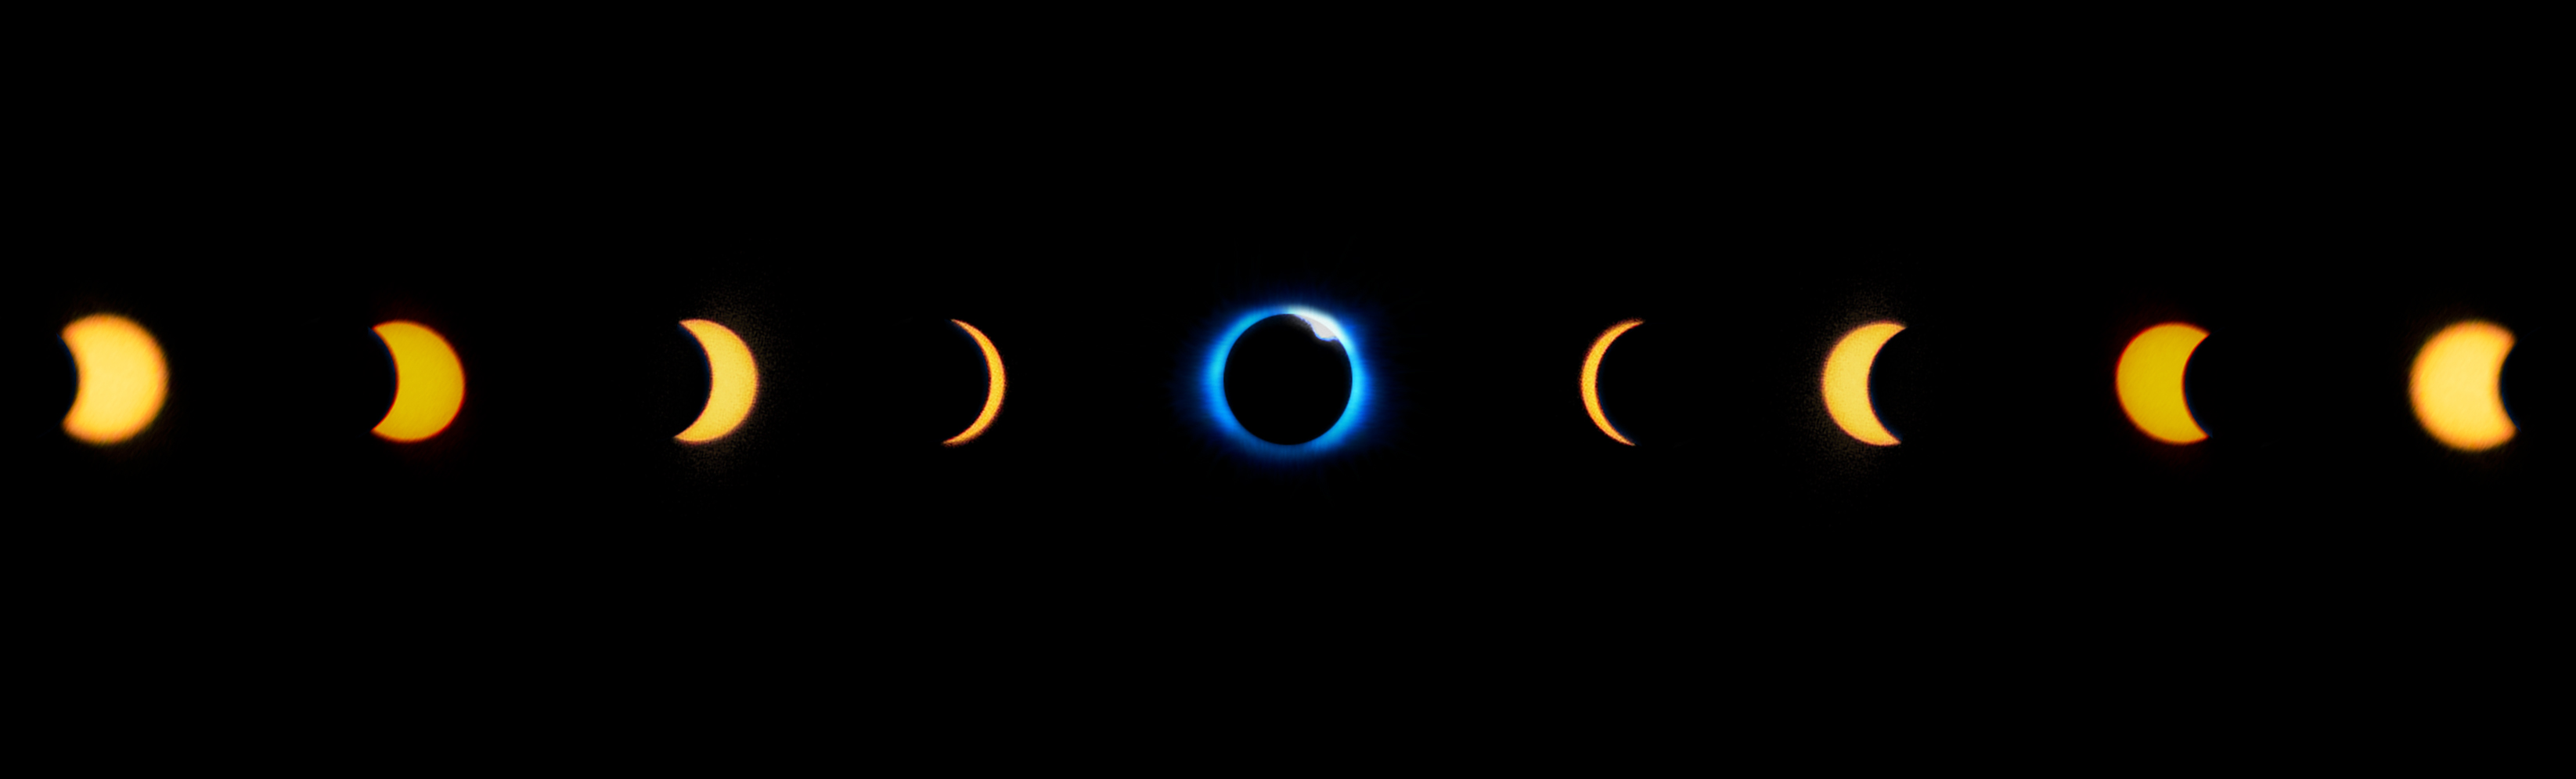 The stages of the 2017 solar eclipse.